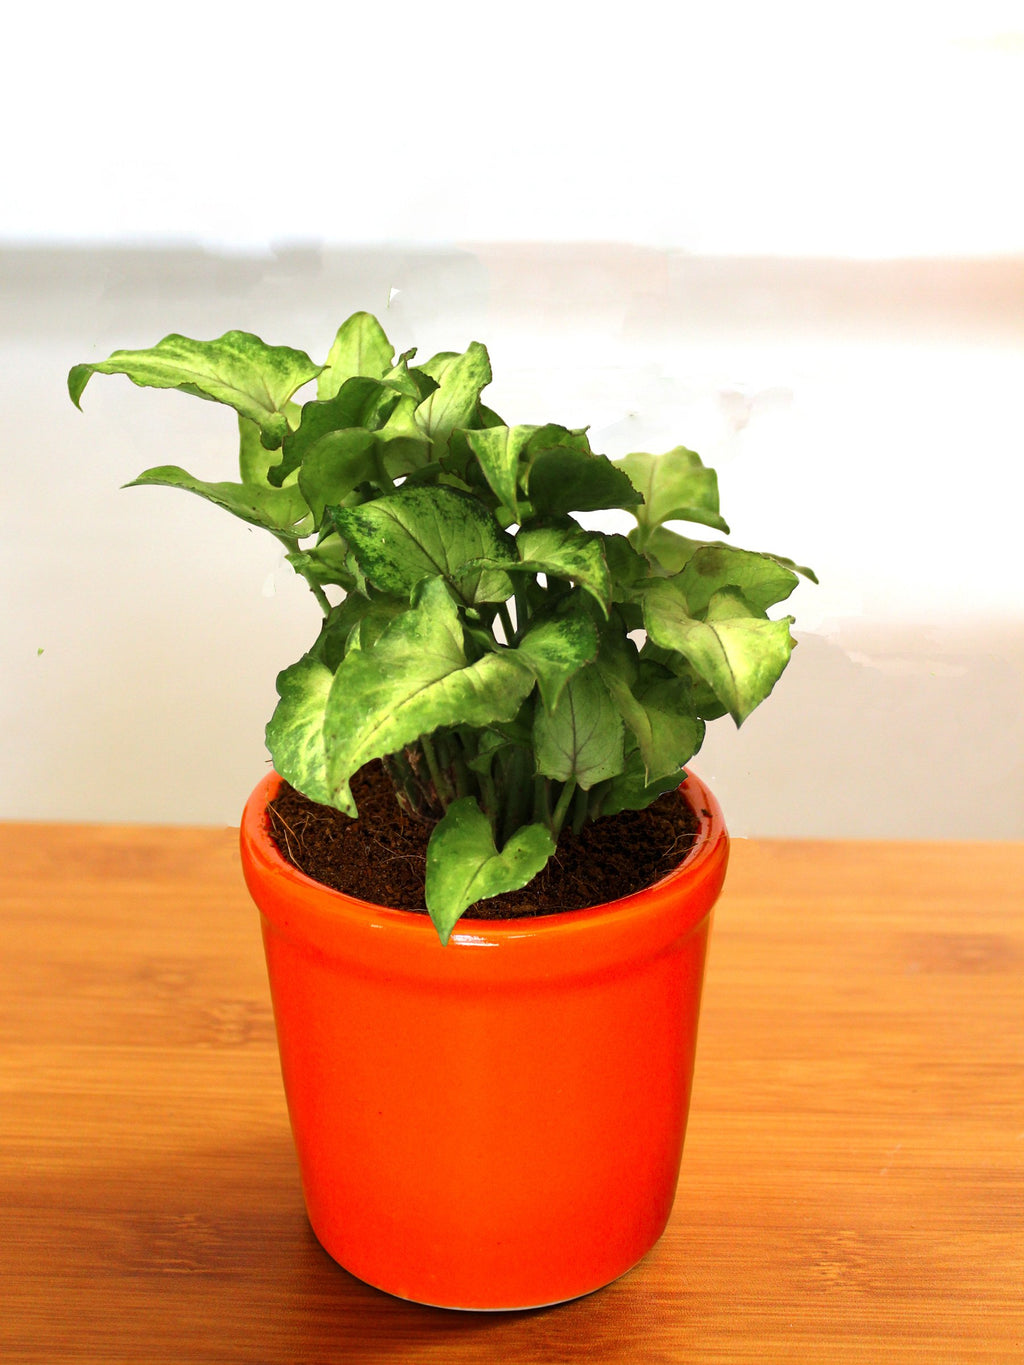 Good Luck Air Purifying Green Syngonium Plant In Orange Jar Ceramic Pot